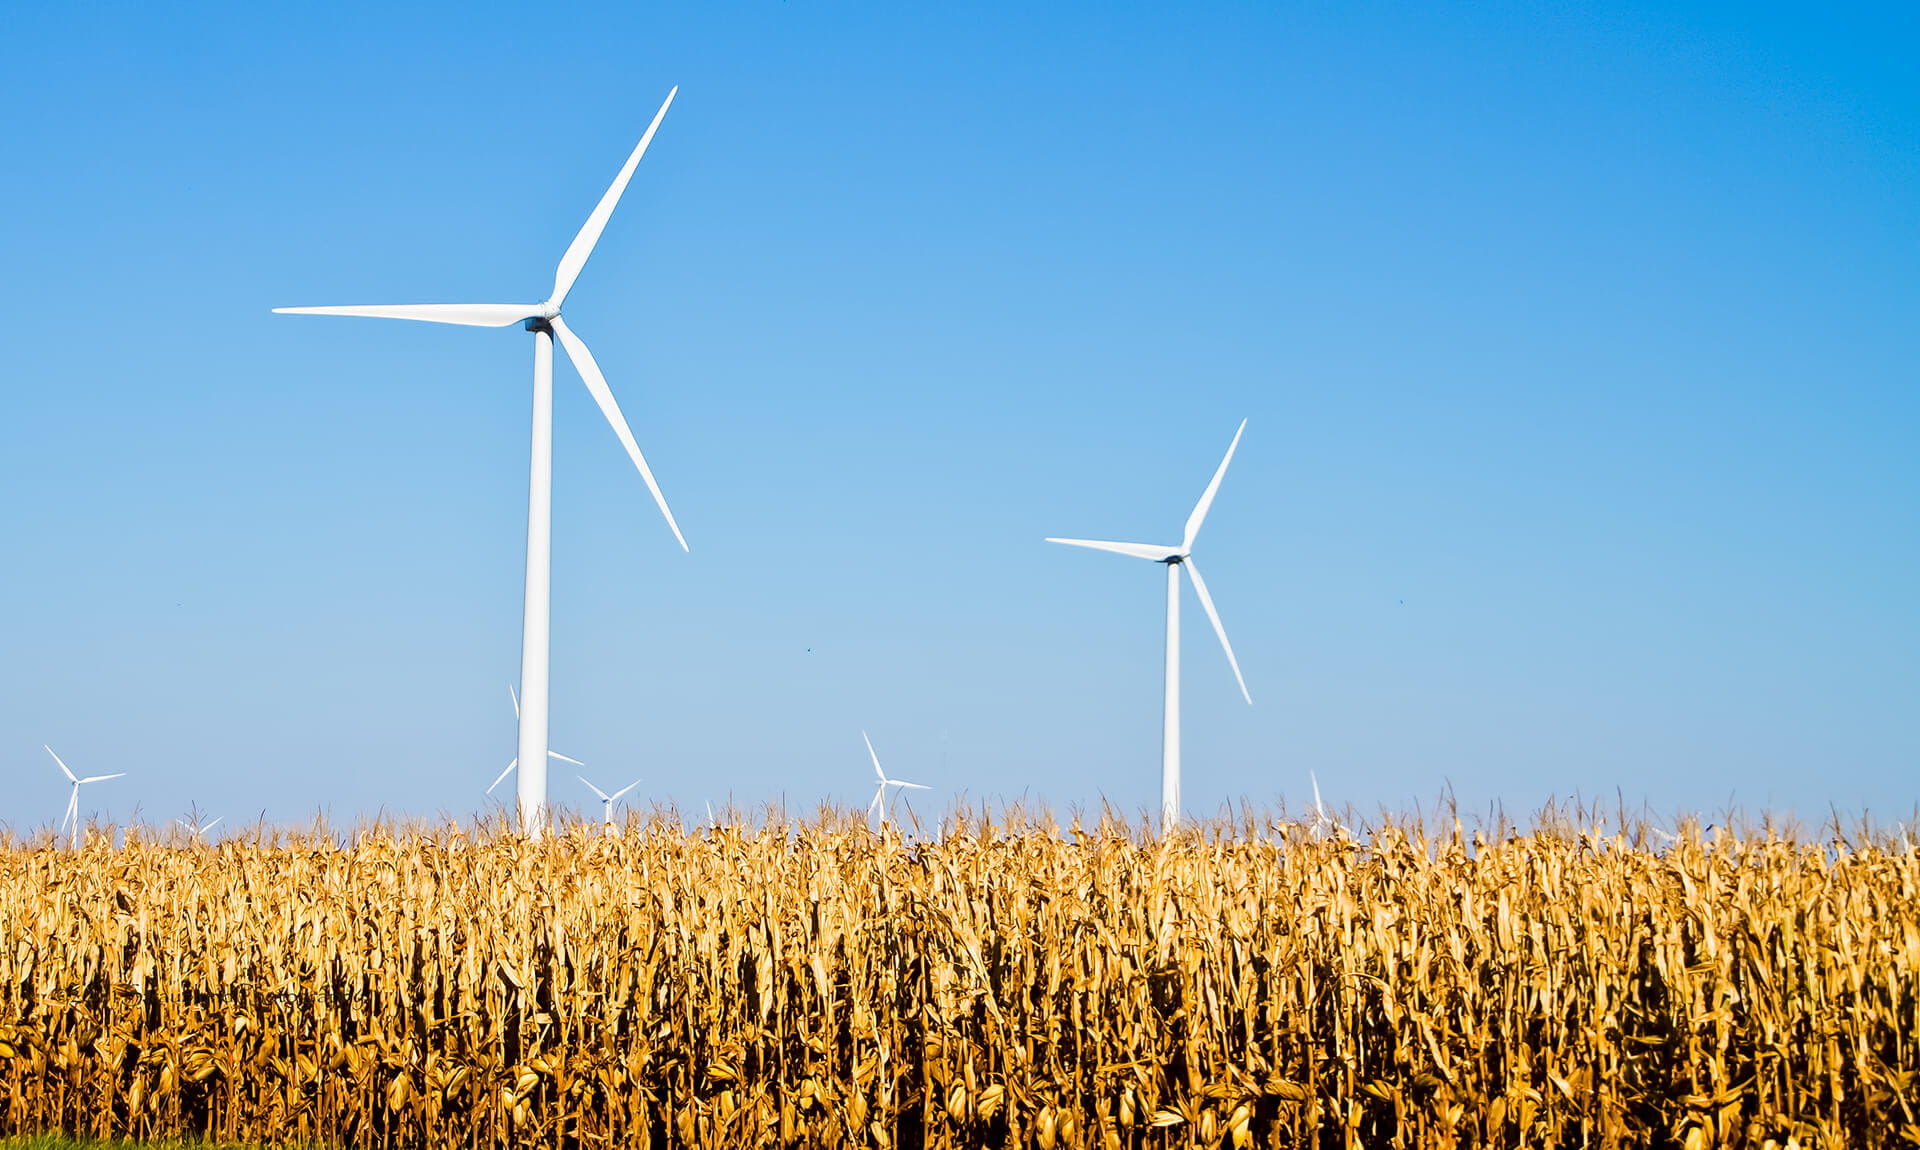 Wind Turbine Wheat Field